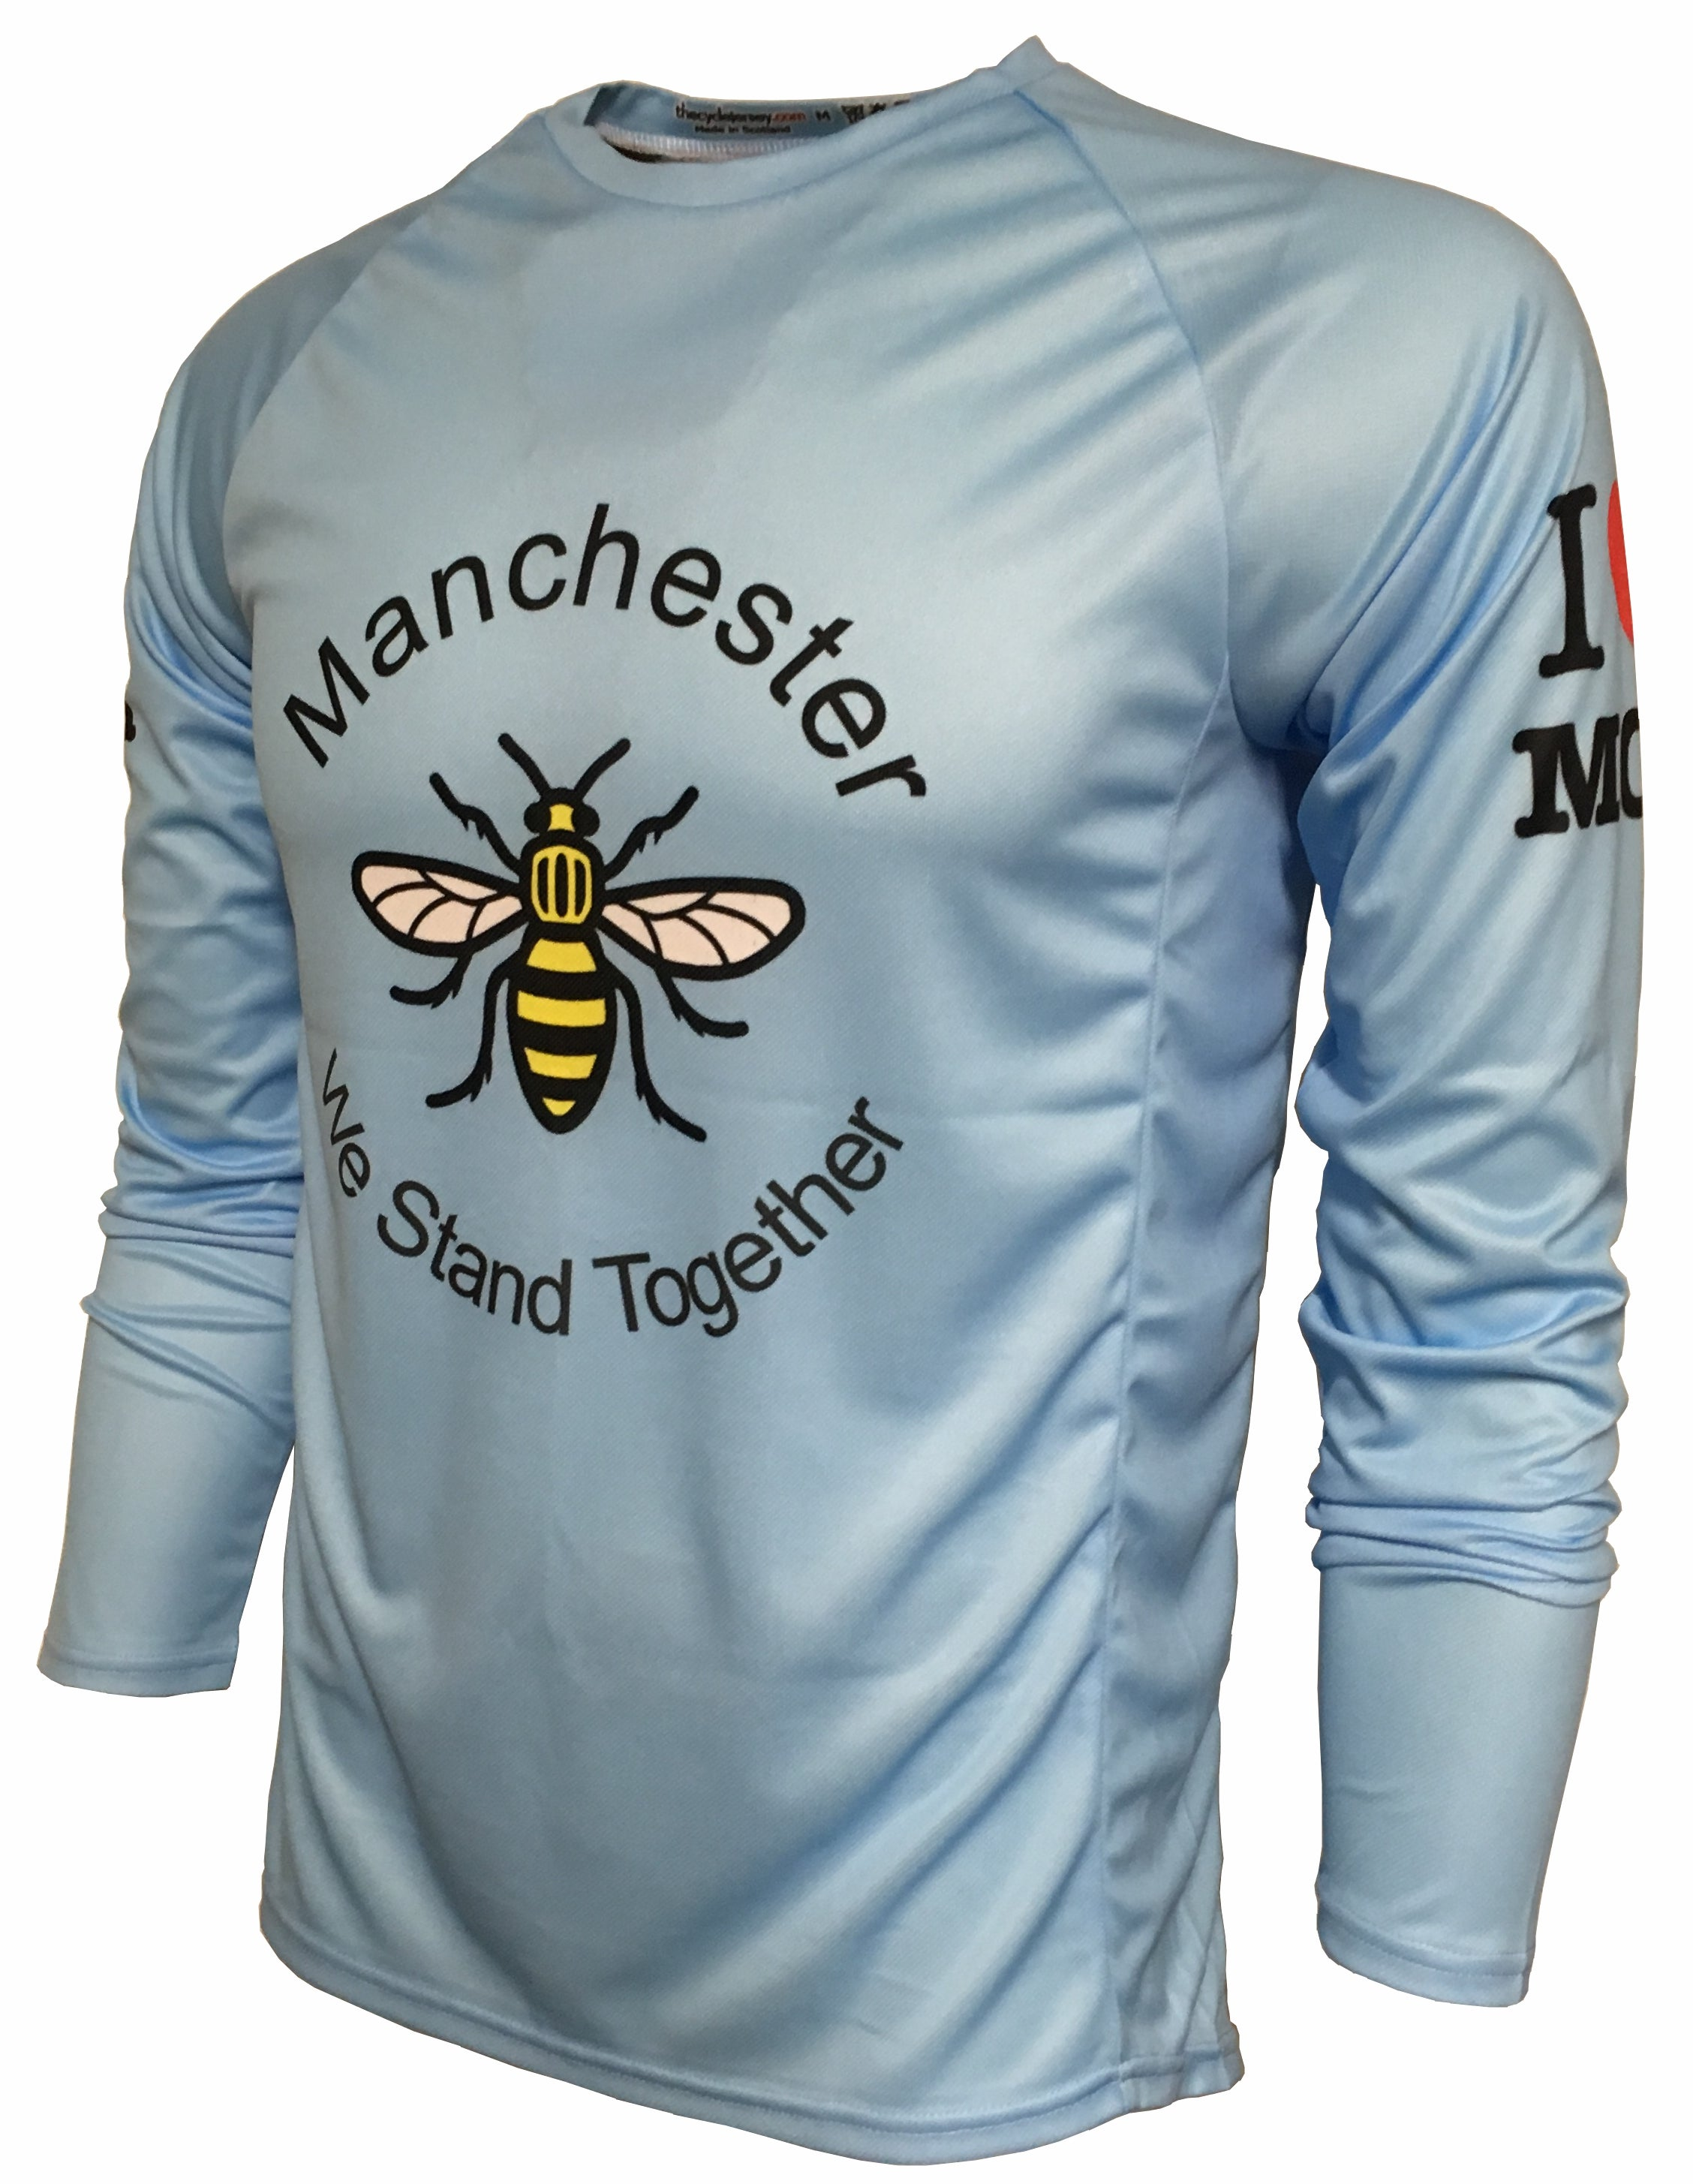 I Love Manchester Enduro Jersey Front